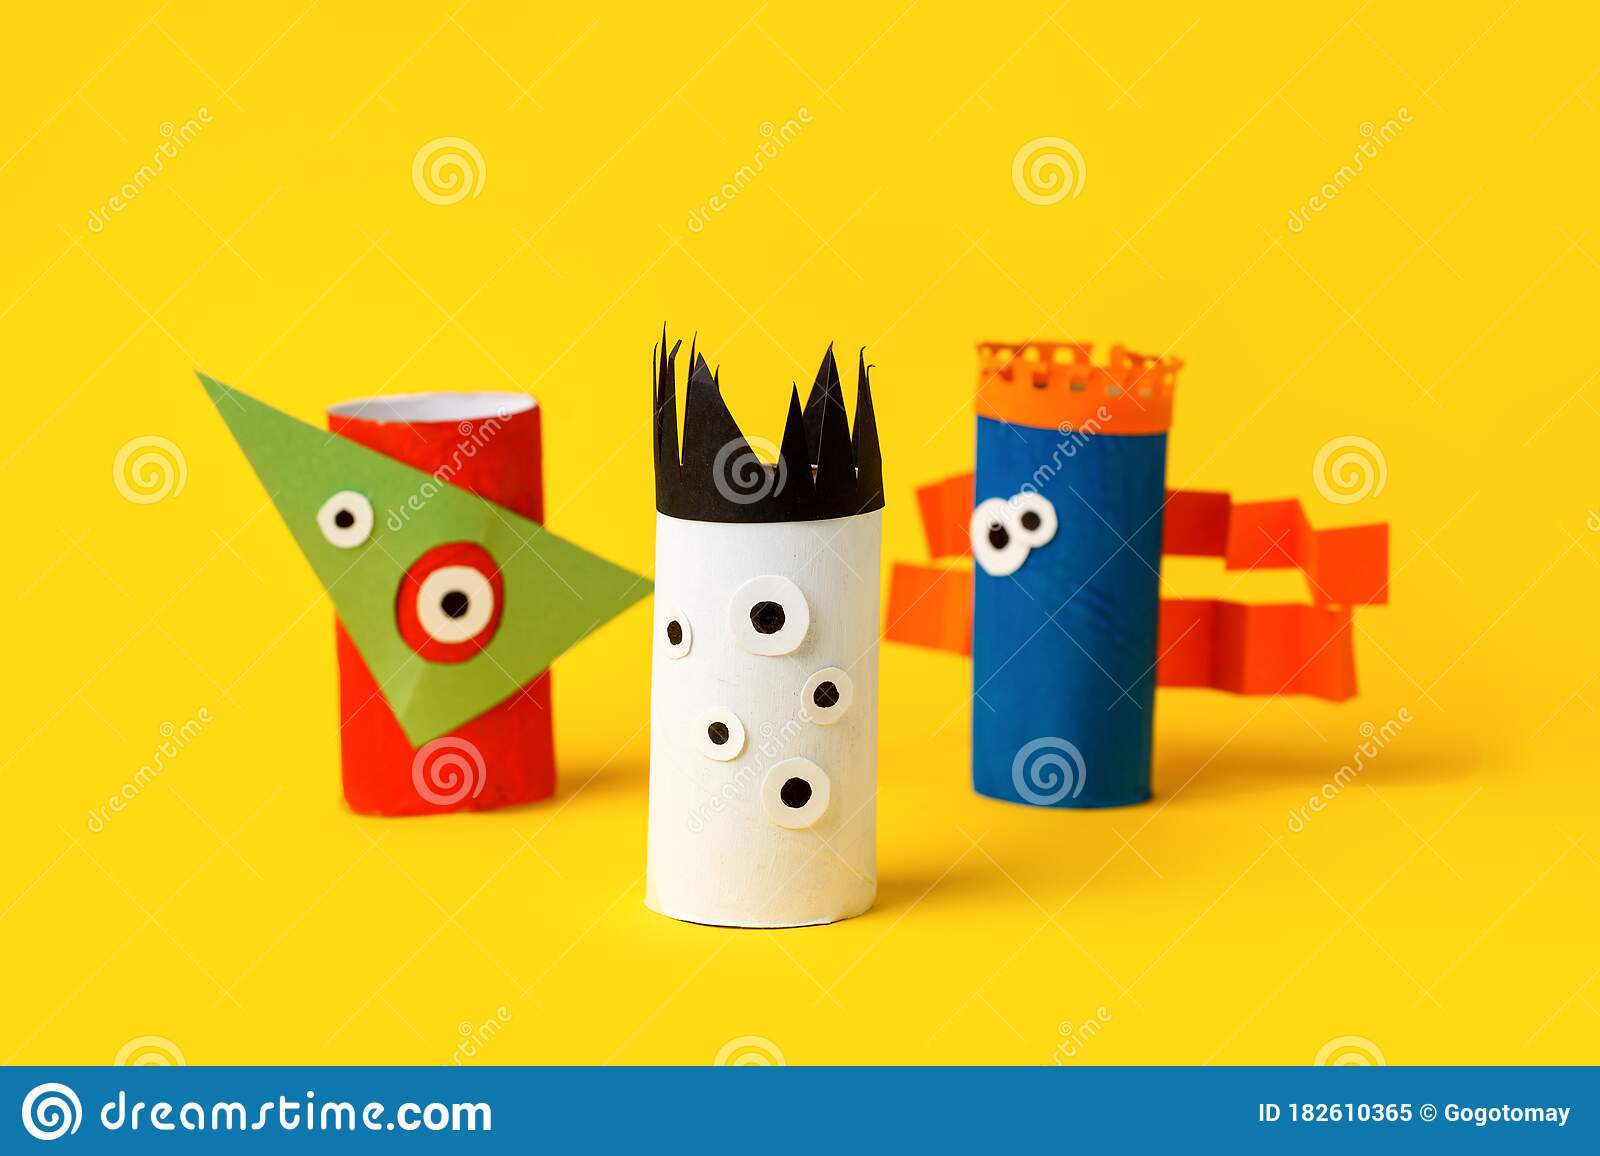 Kids Art Therapy Coronavirus Pandemic Halloween Crafts Paper Monsters On Blue Paper Background With Copy Space For Text Stock Image Image Of Happy Children 182610365